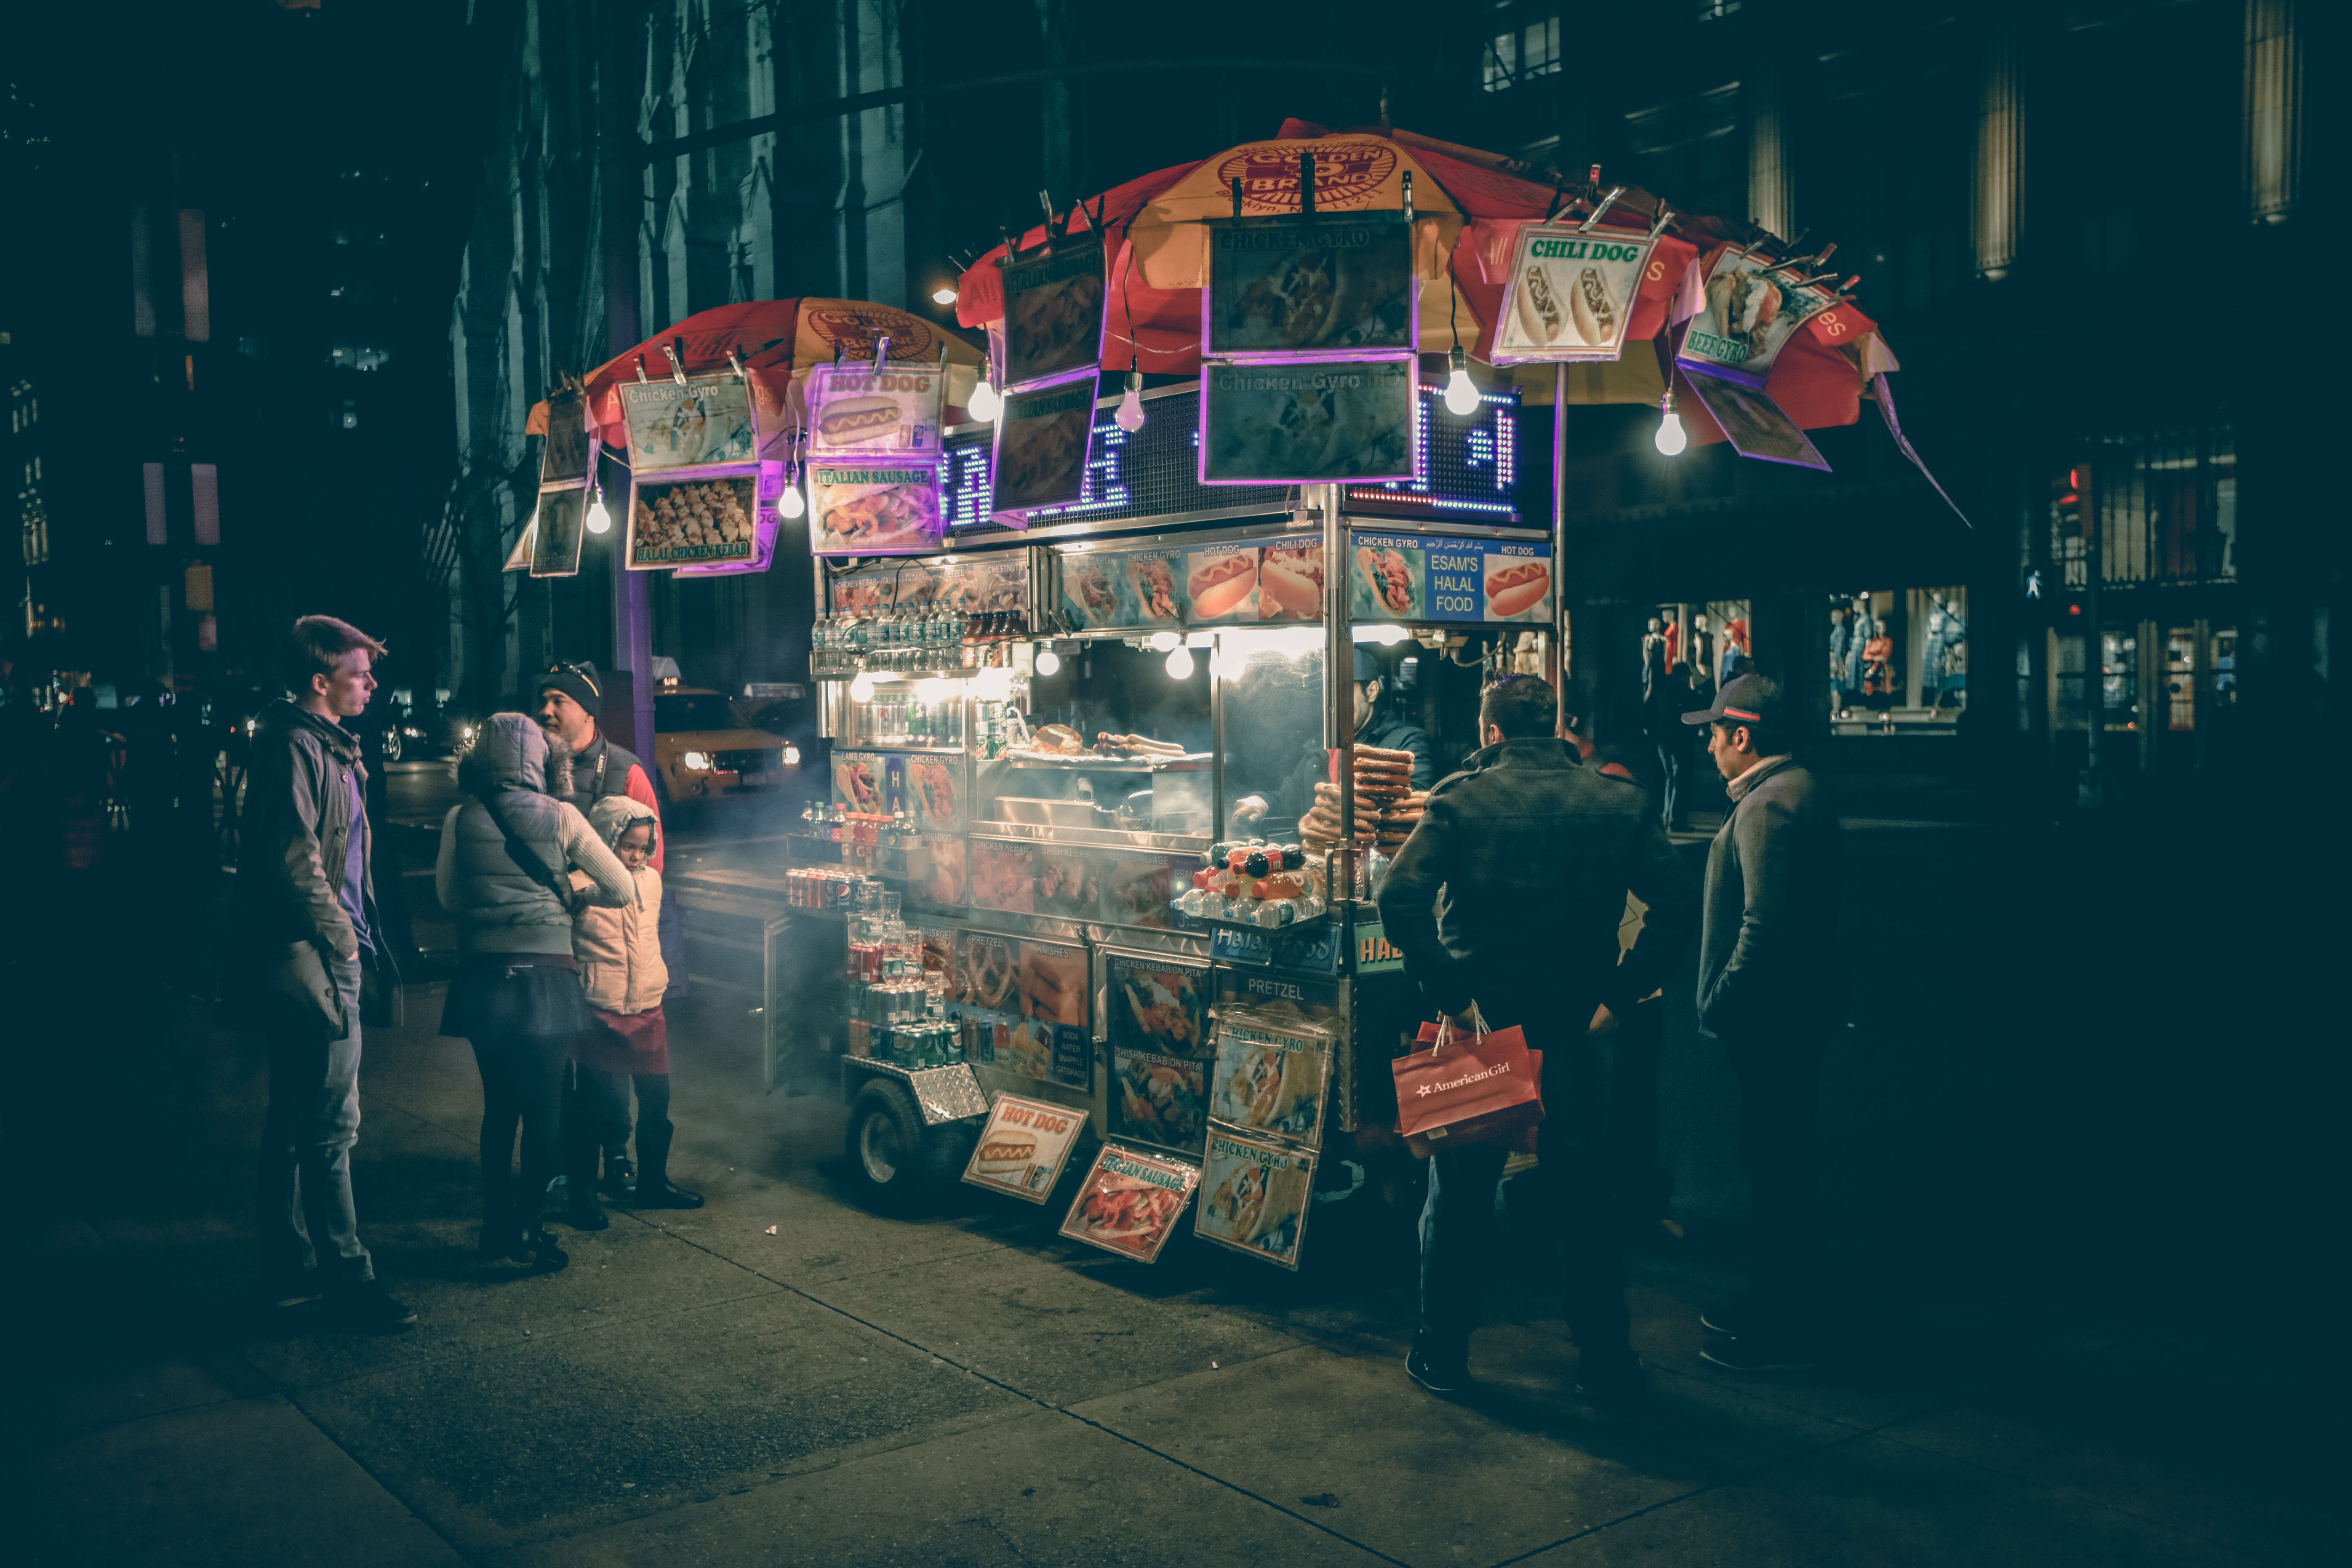 People checking out a downtown food vendor in New York